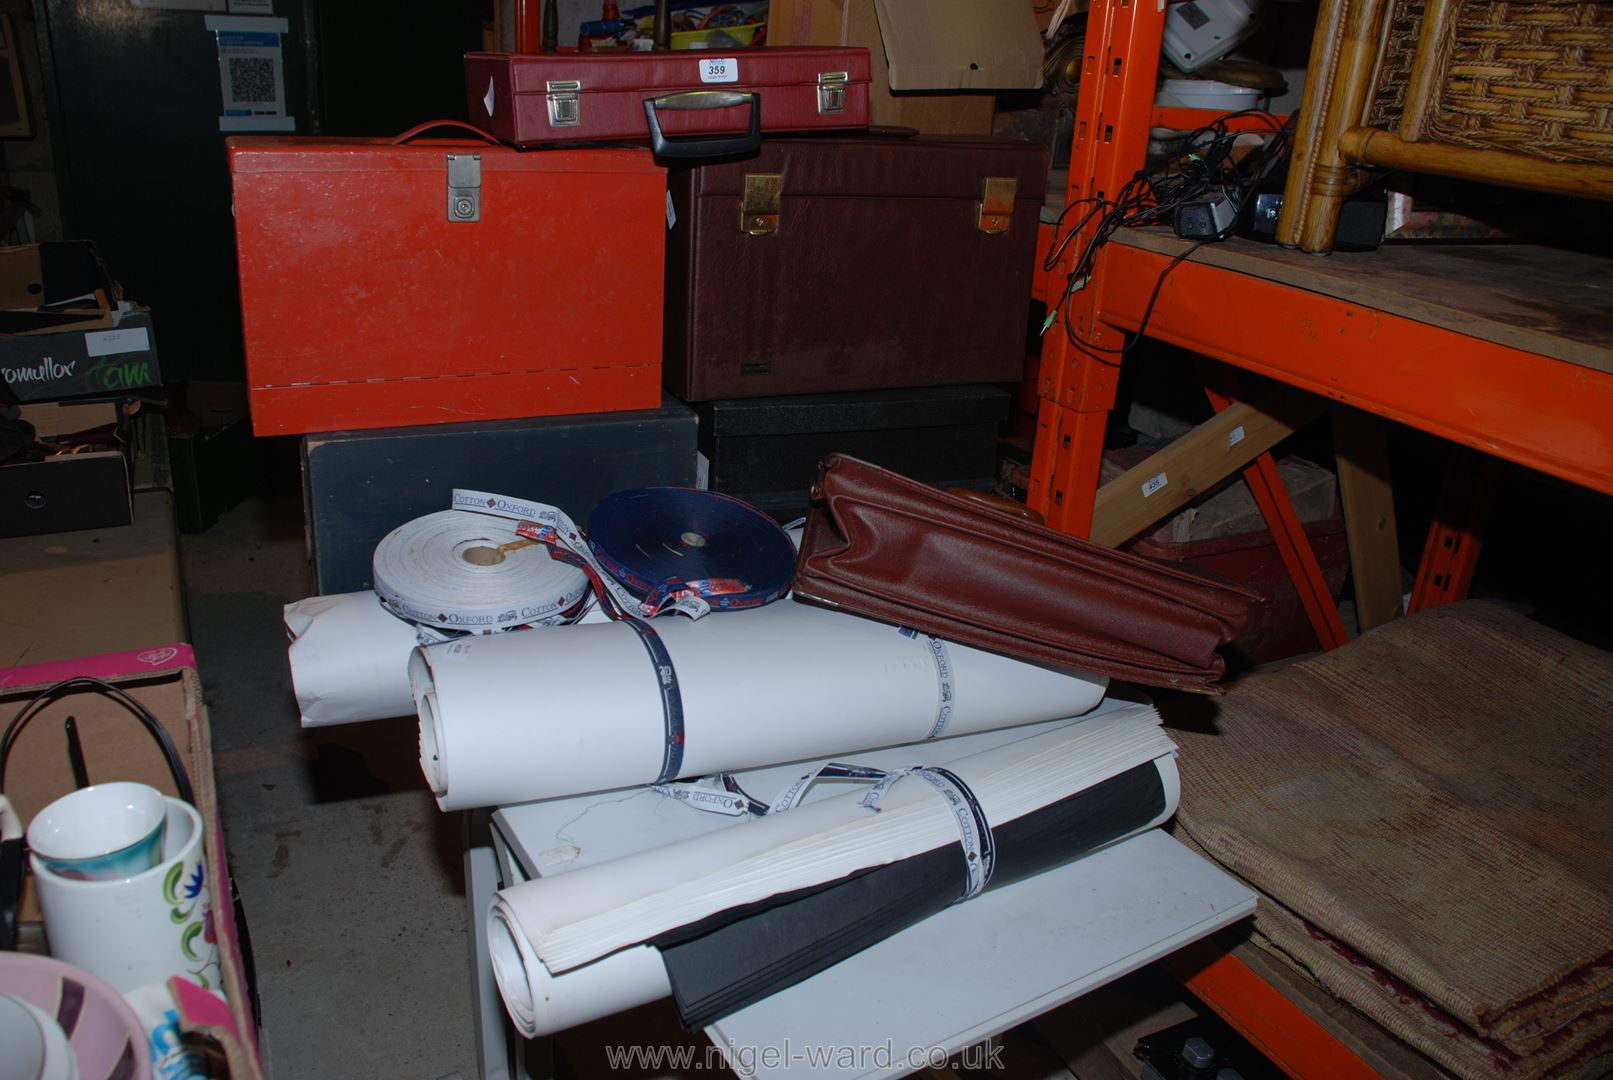 A quantity of filing boxes, rolls of paper, card, fabric, tape, etc.